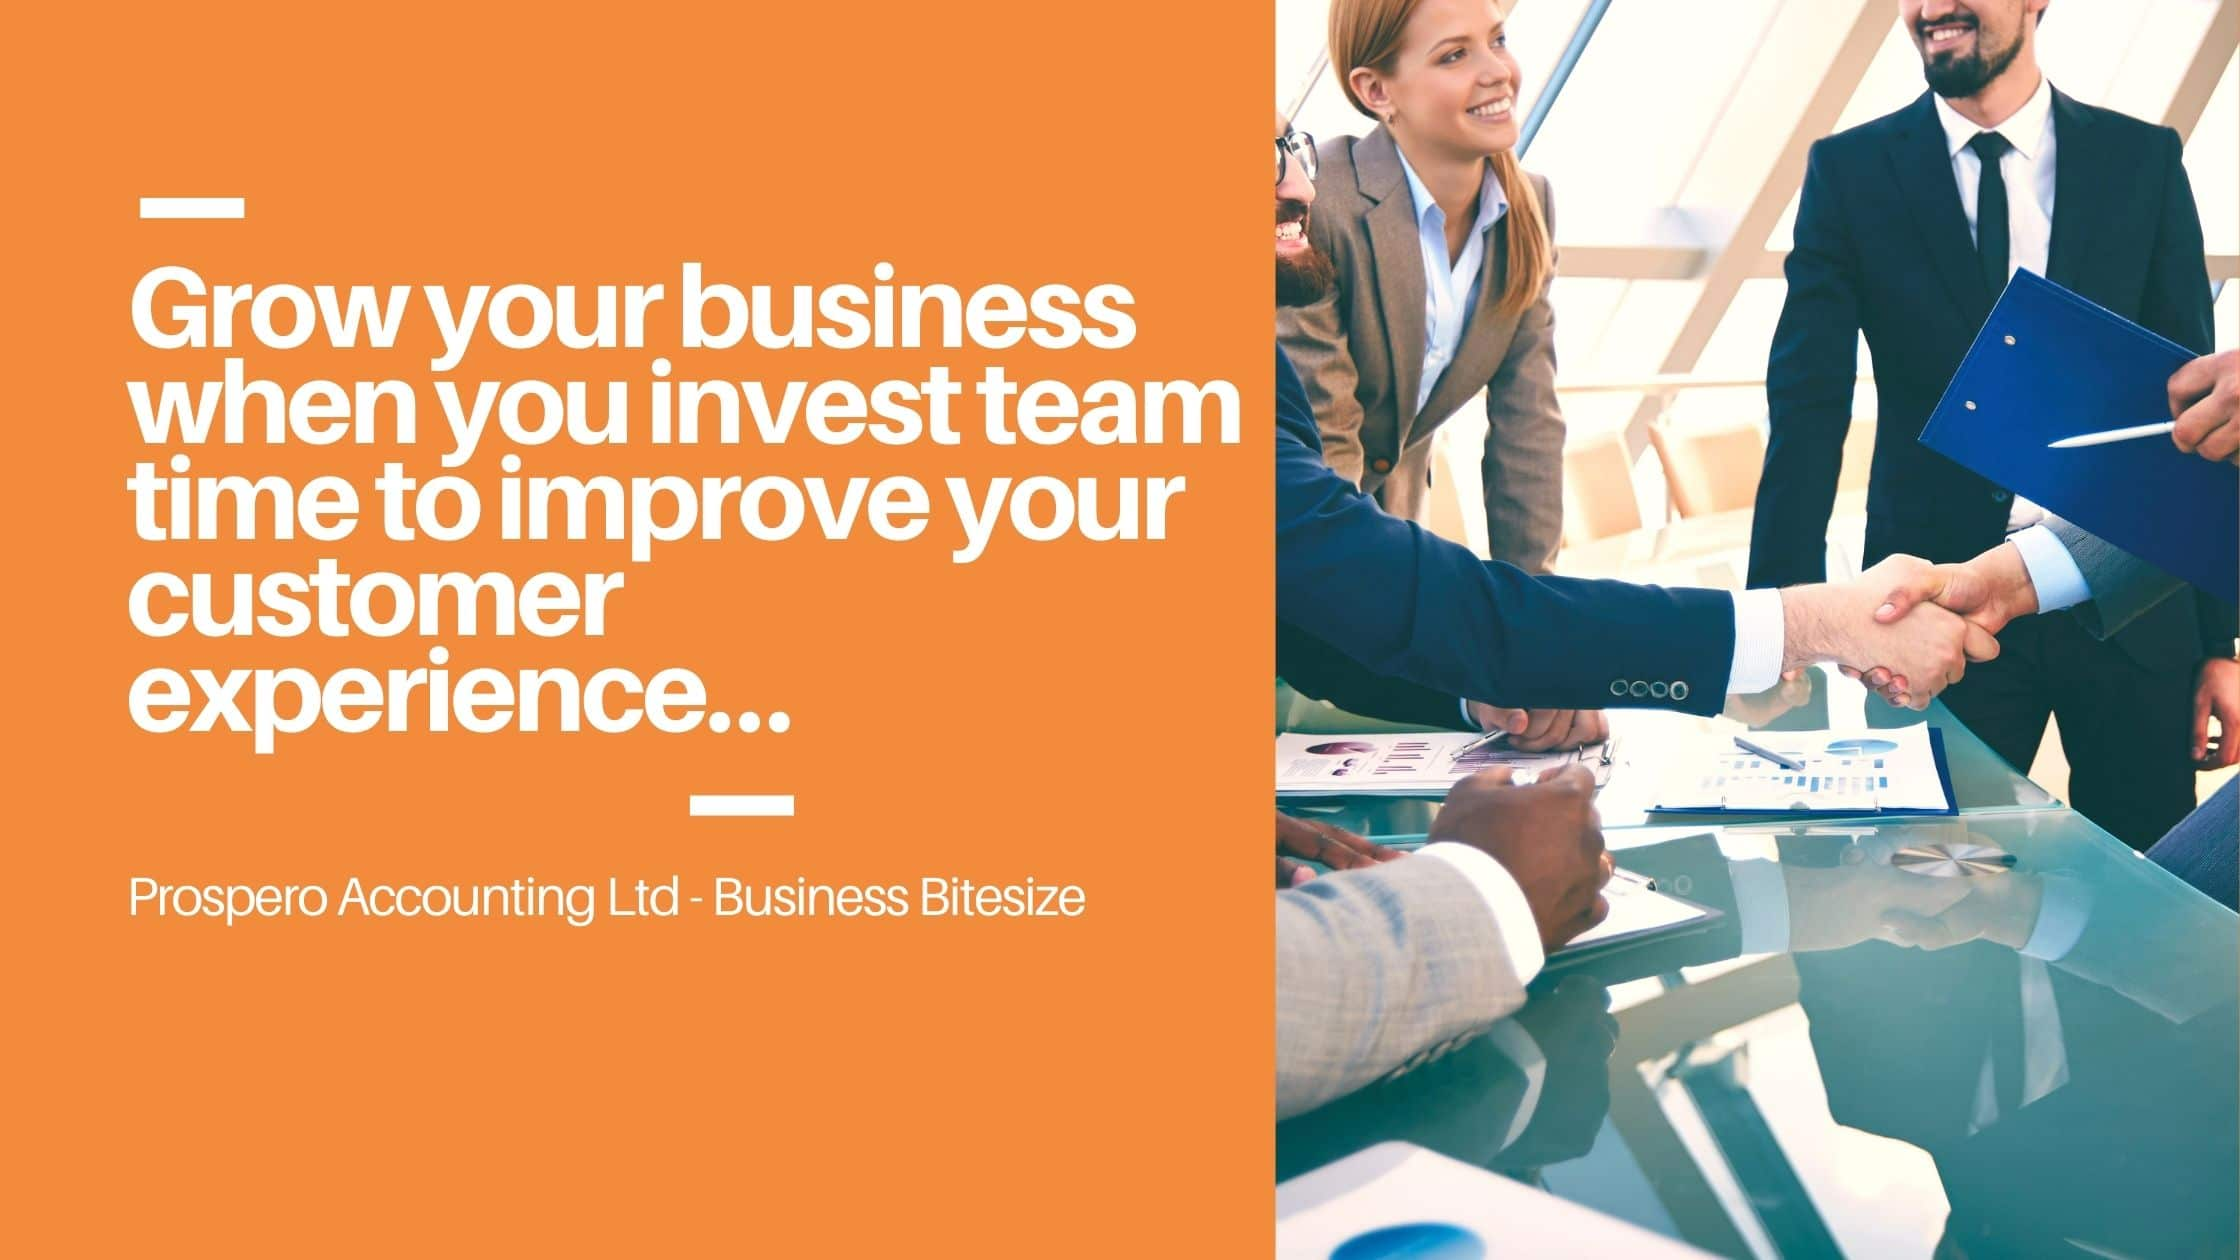 Business Bitesize - Invest in Team Time for Customer Experience